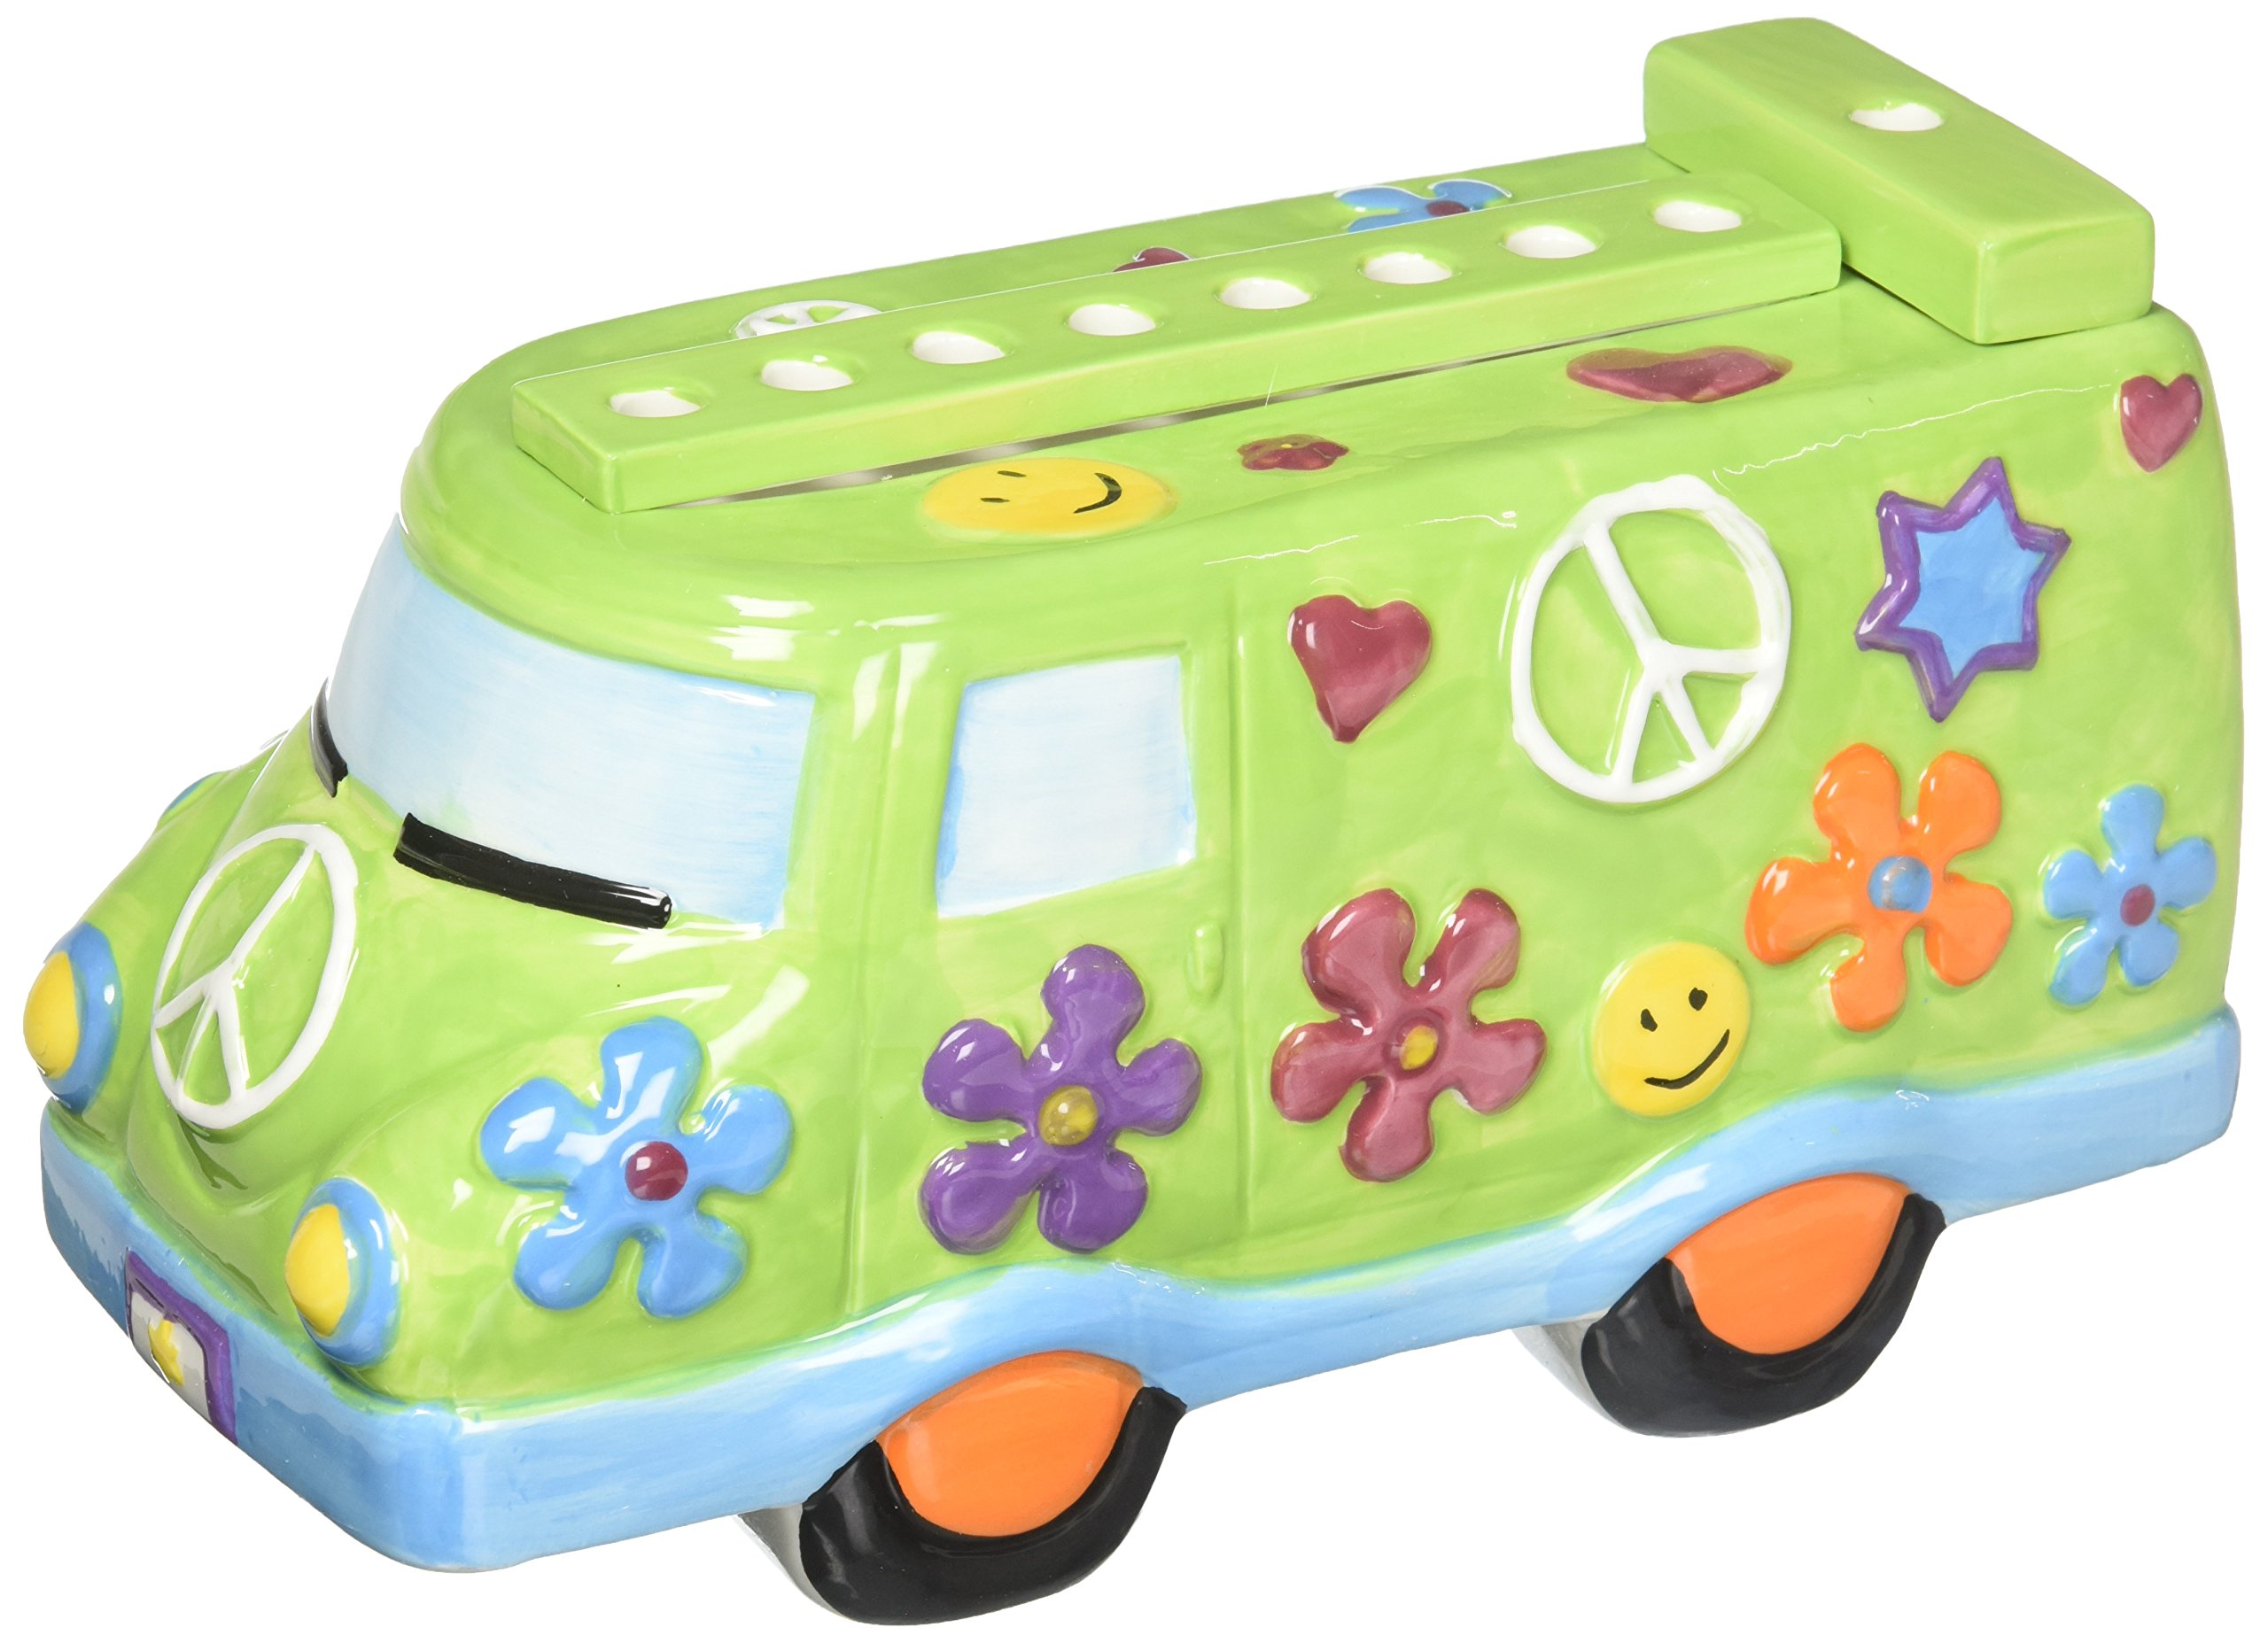 Gi' Mark M-3697 Hand Painted Ceramic Peace Van Hanukkah Menorah, Colorful